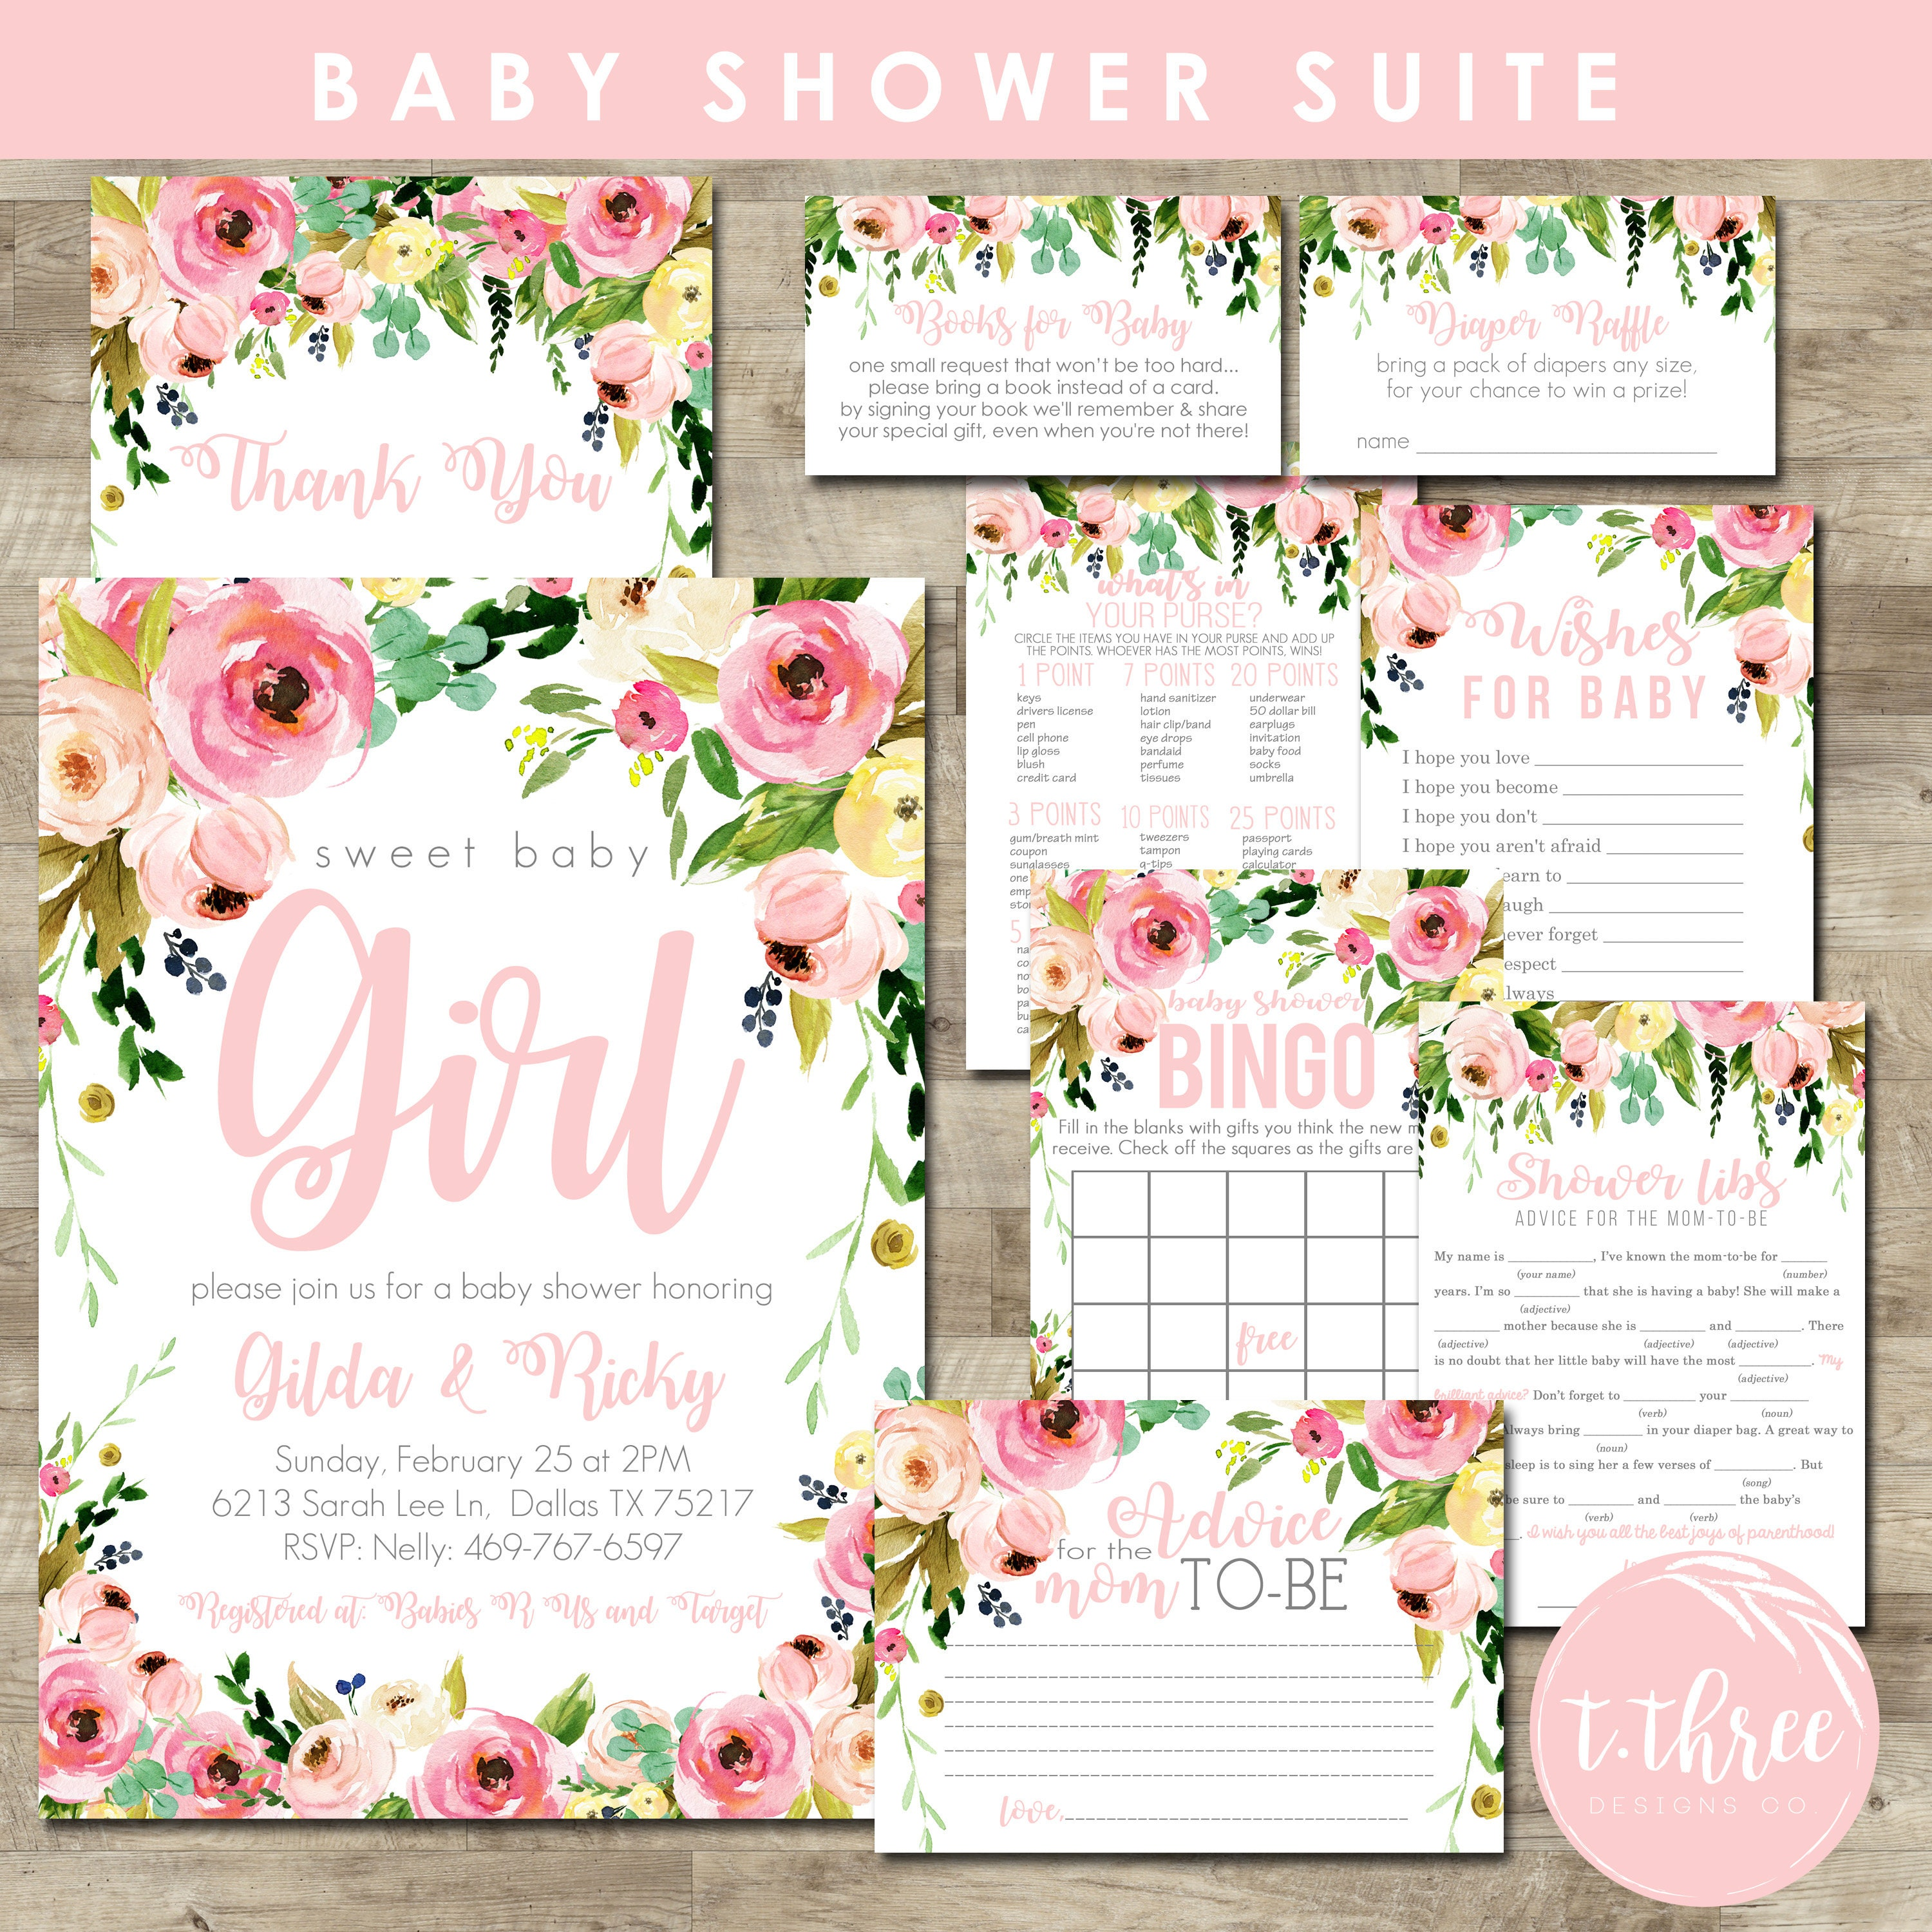 Watercolor flower baby shower package girl baby shower invitation watercolor flower baby shower package girl baby shower invitation package girl baby shower invite blush pink floral invite filmwisefo Choice Image